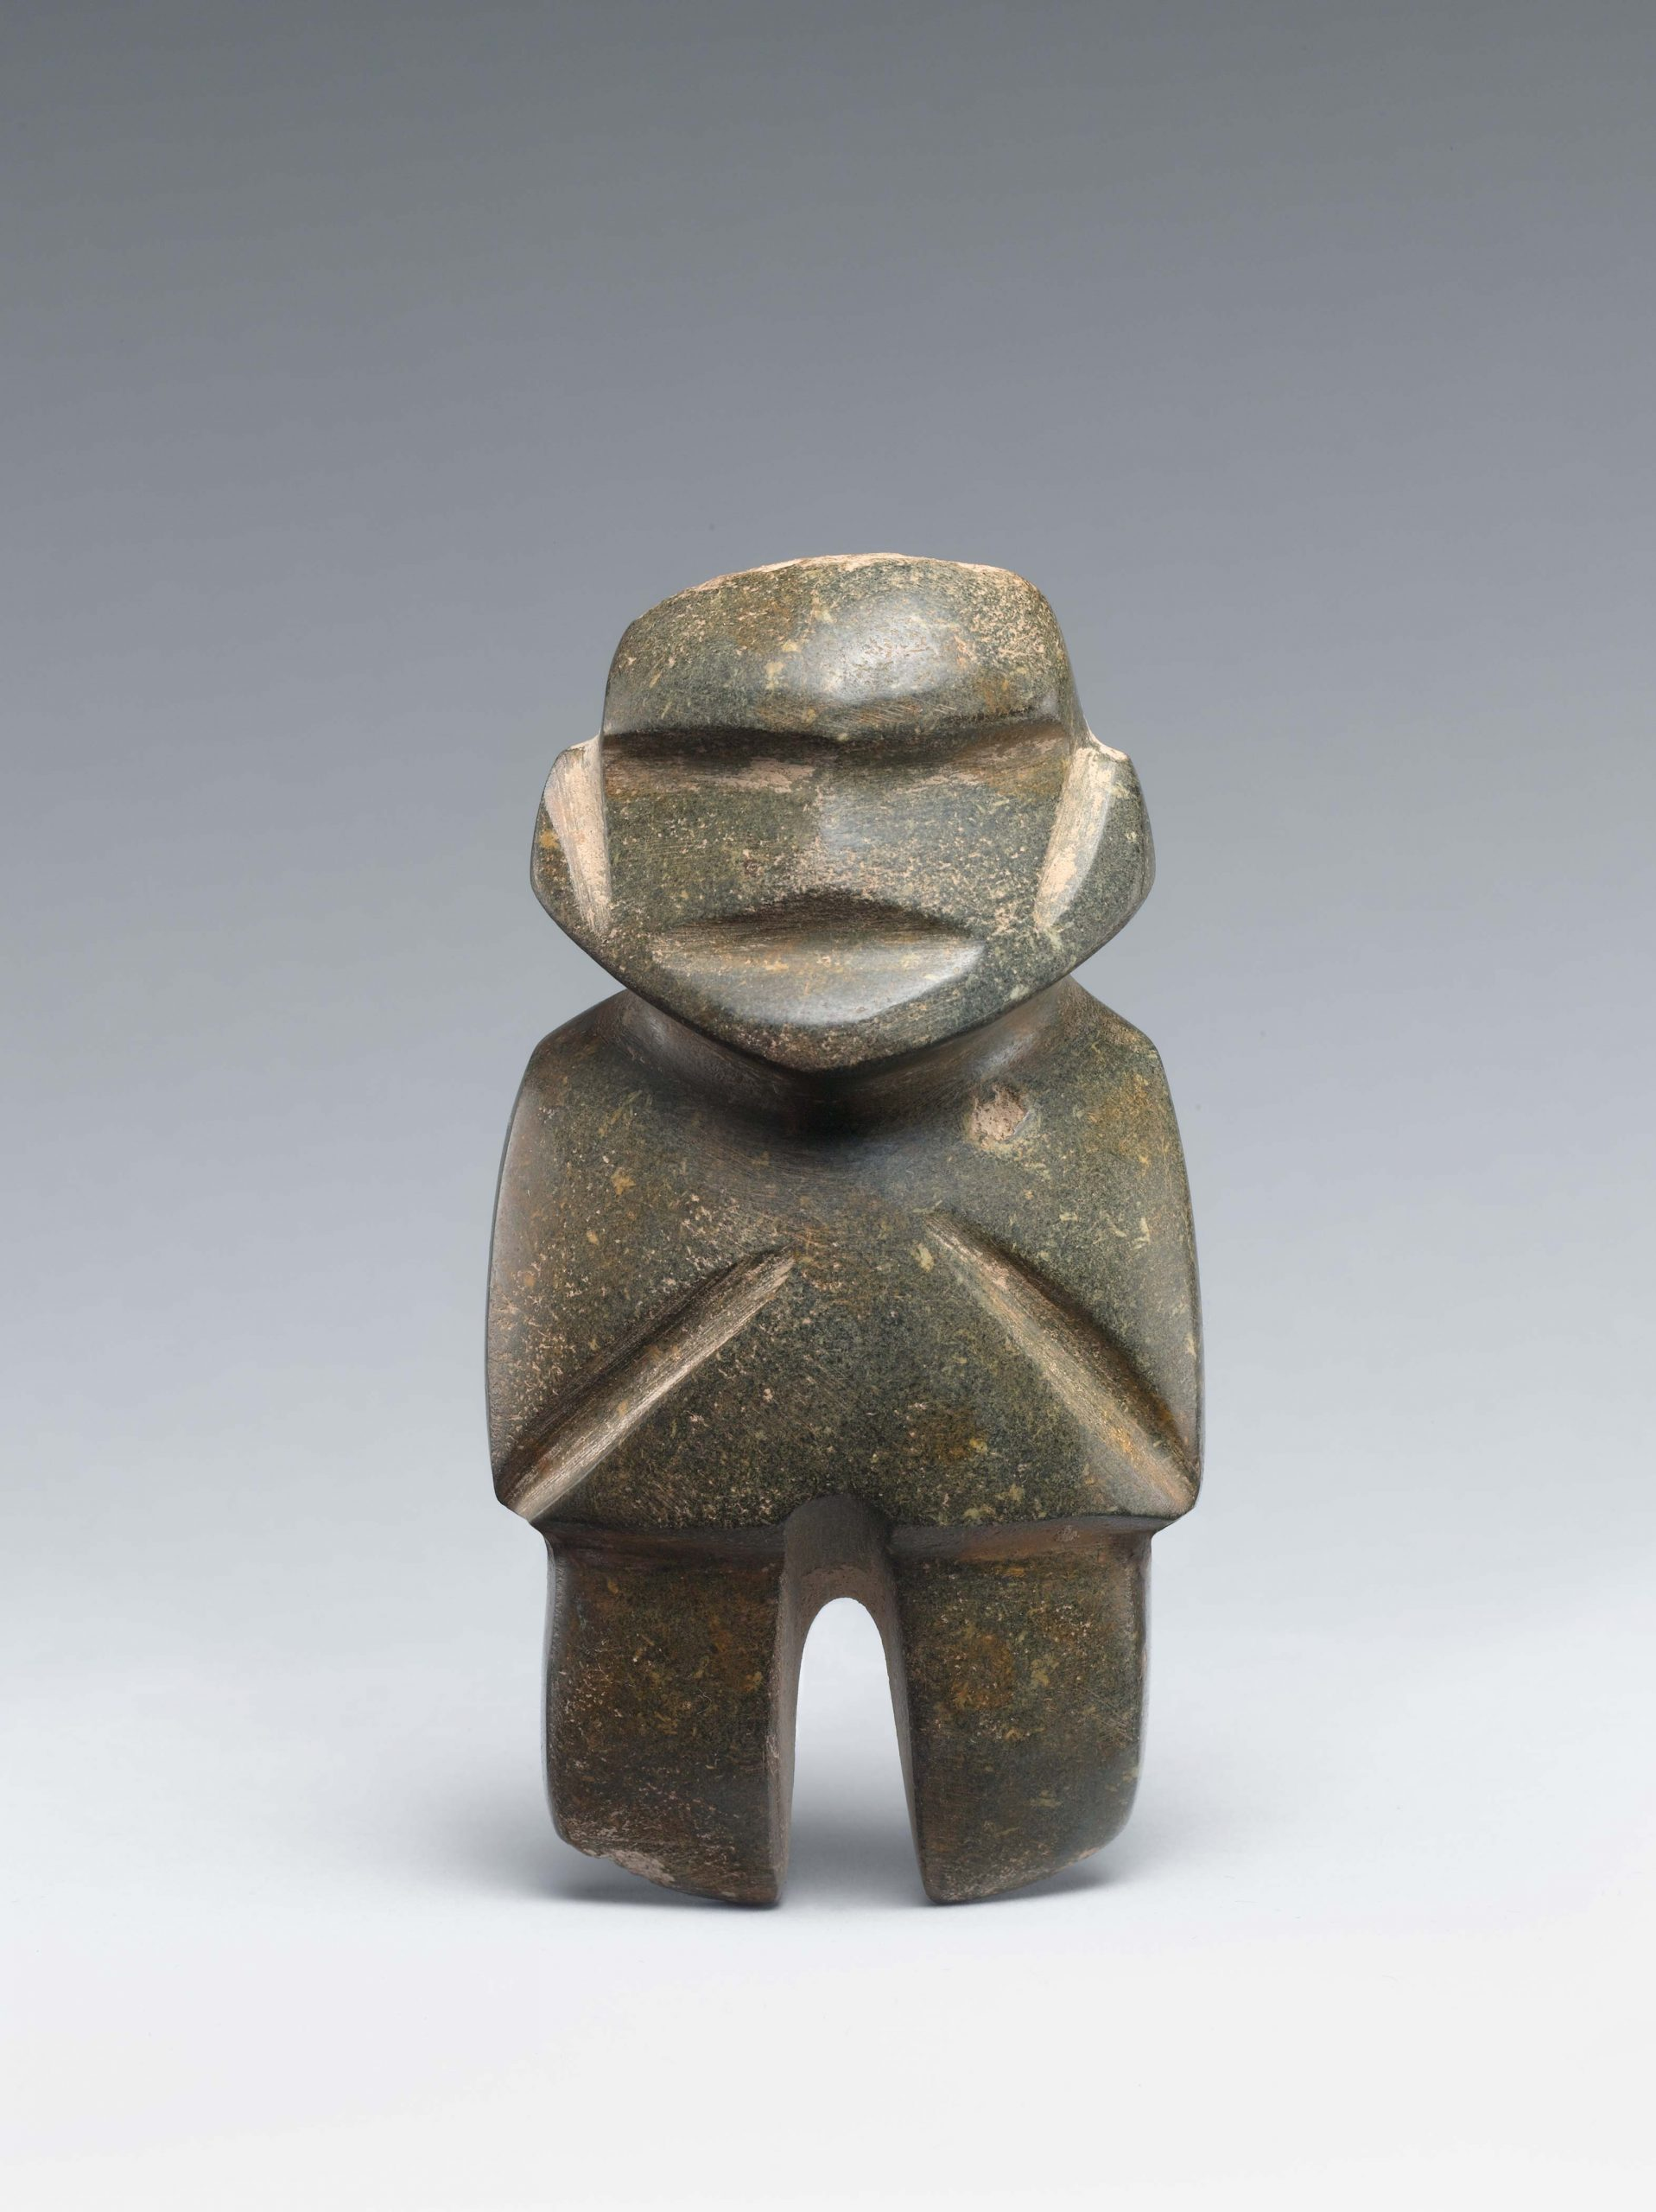 Abstract dark-green standing stone figure with indented features, including eyes, ears, mouth, arms, and legs.